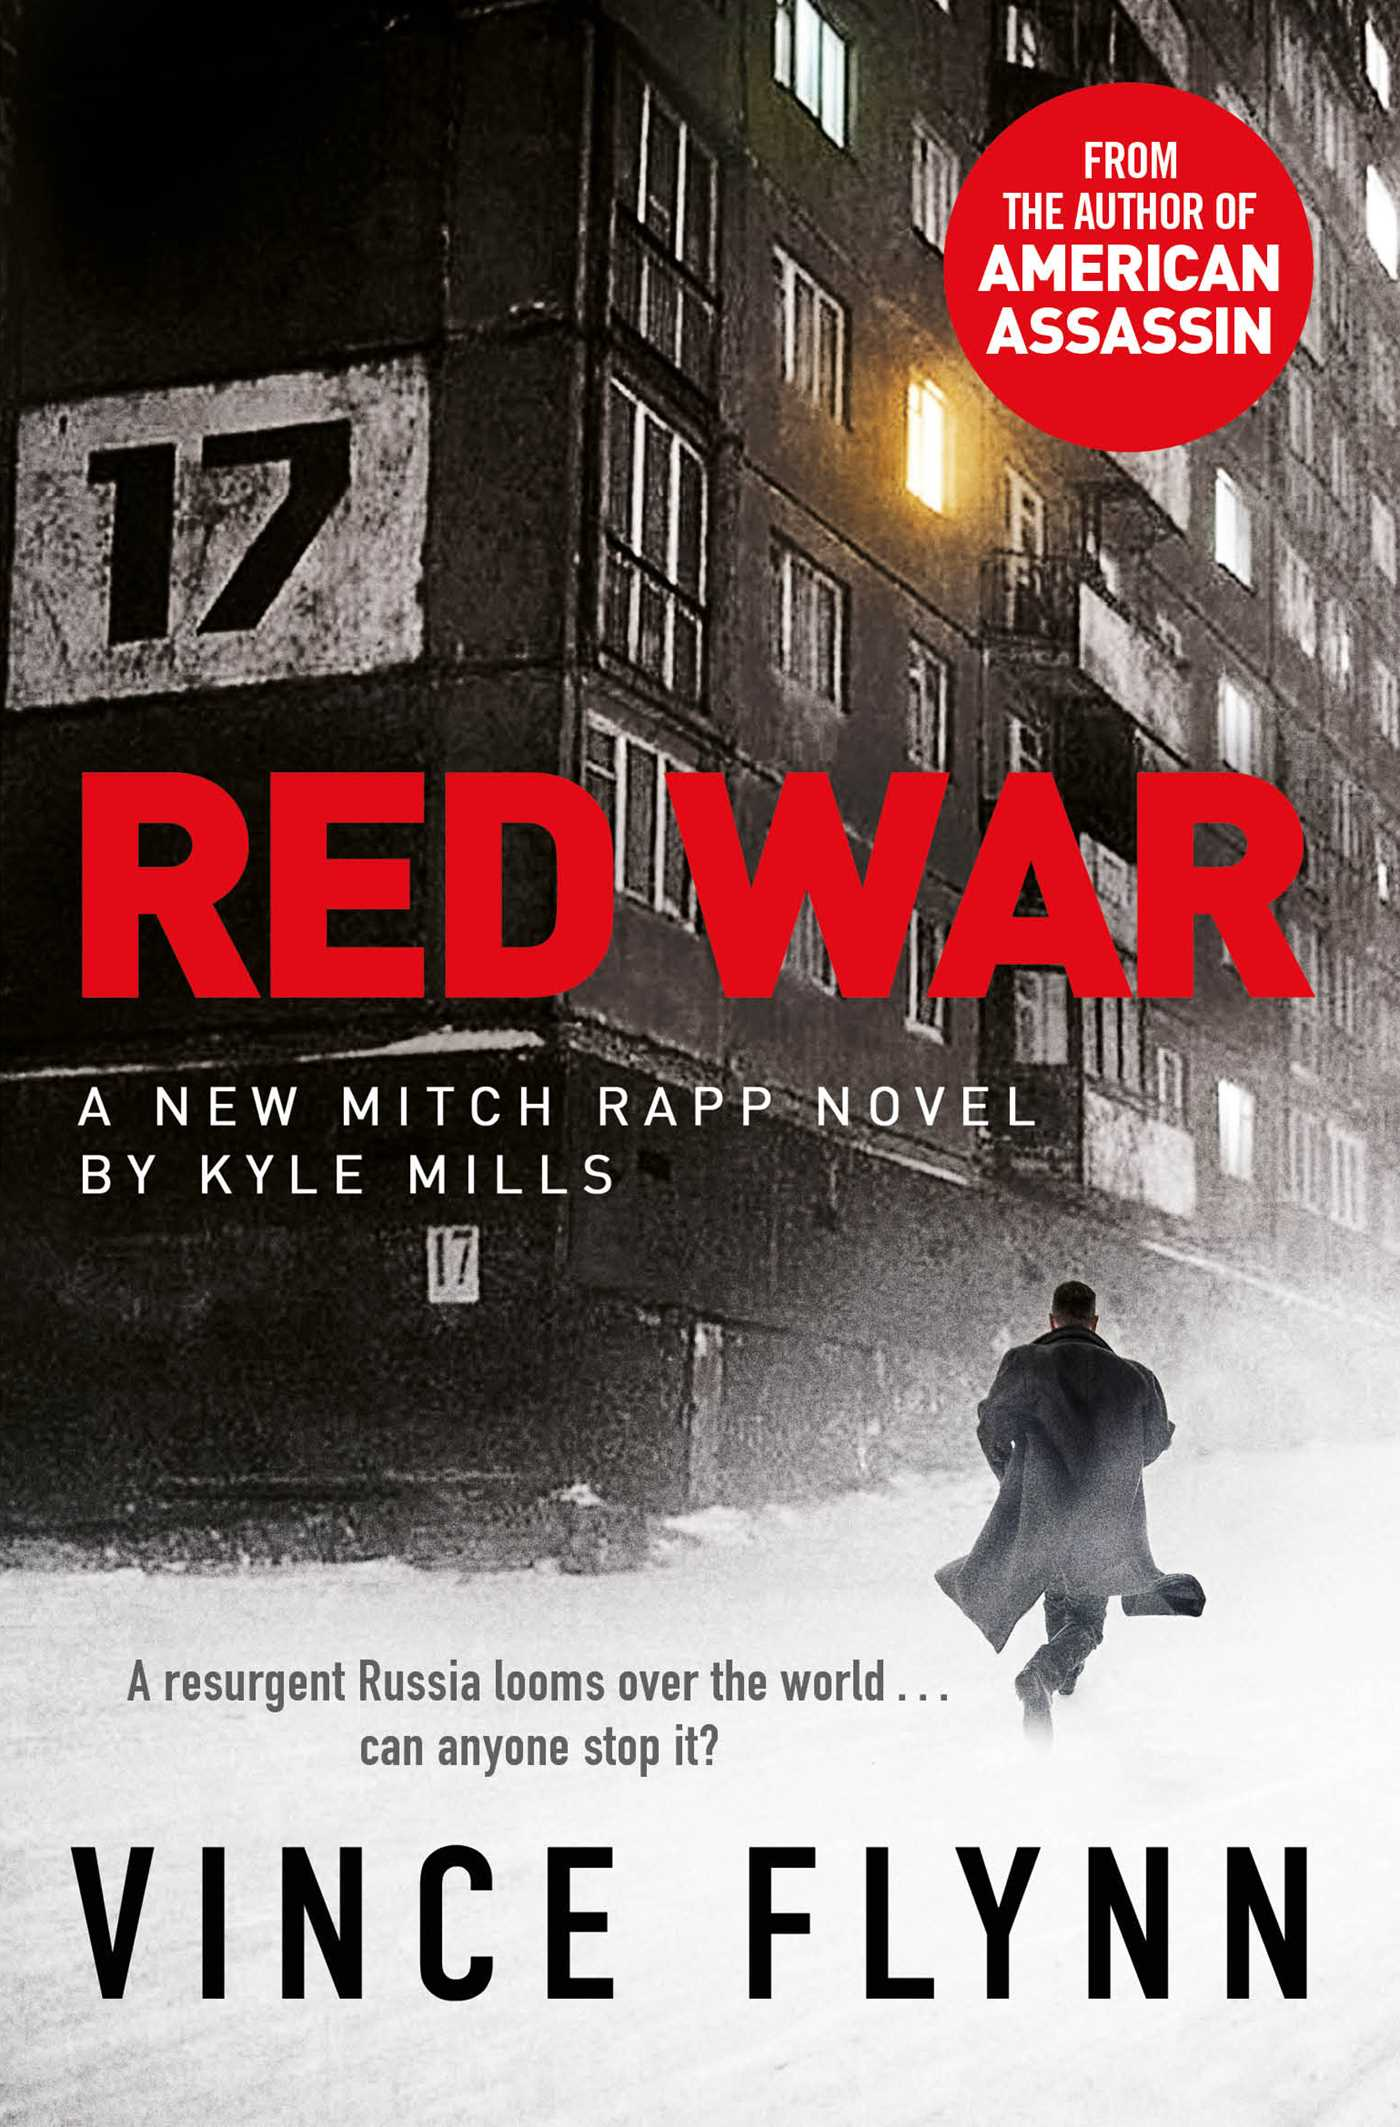 Red war 9781471170683 hr